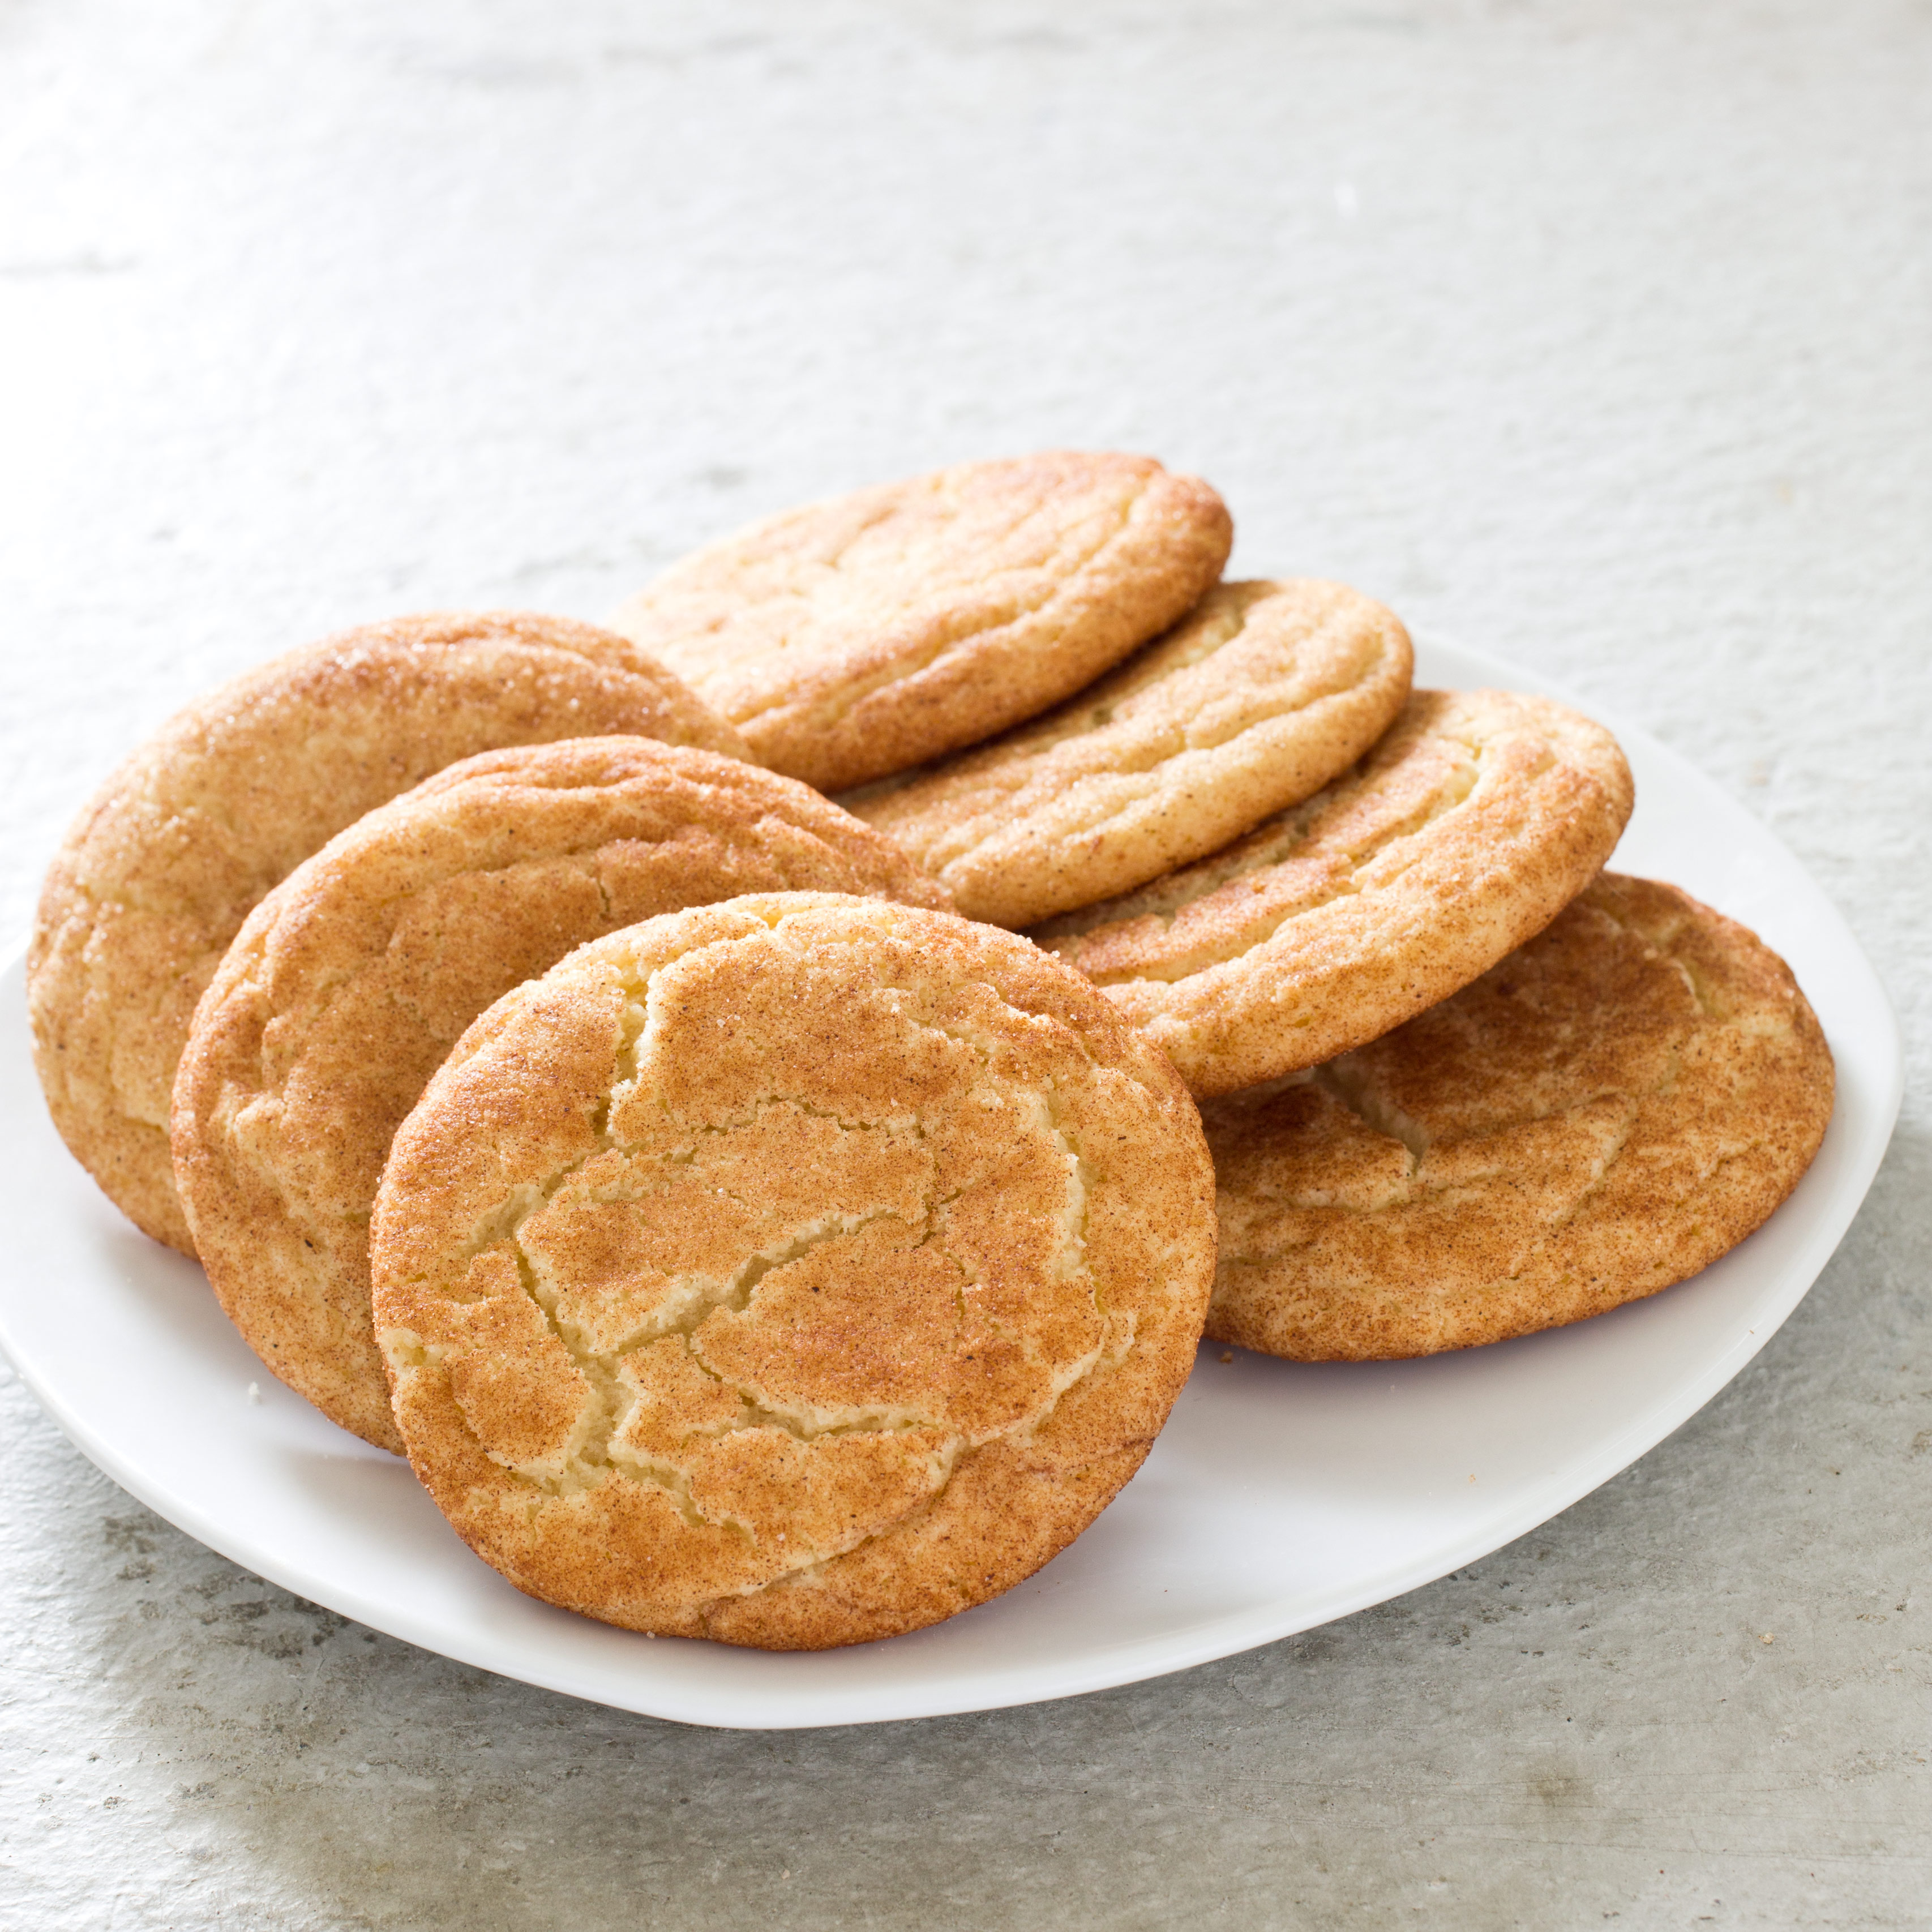 Pbs Cooks Country Test Kitchen Snickerdoodles Americas Test Kitchen